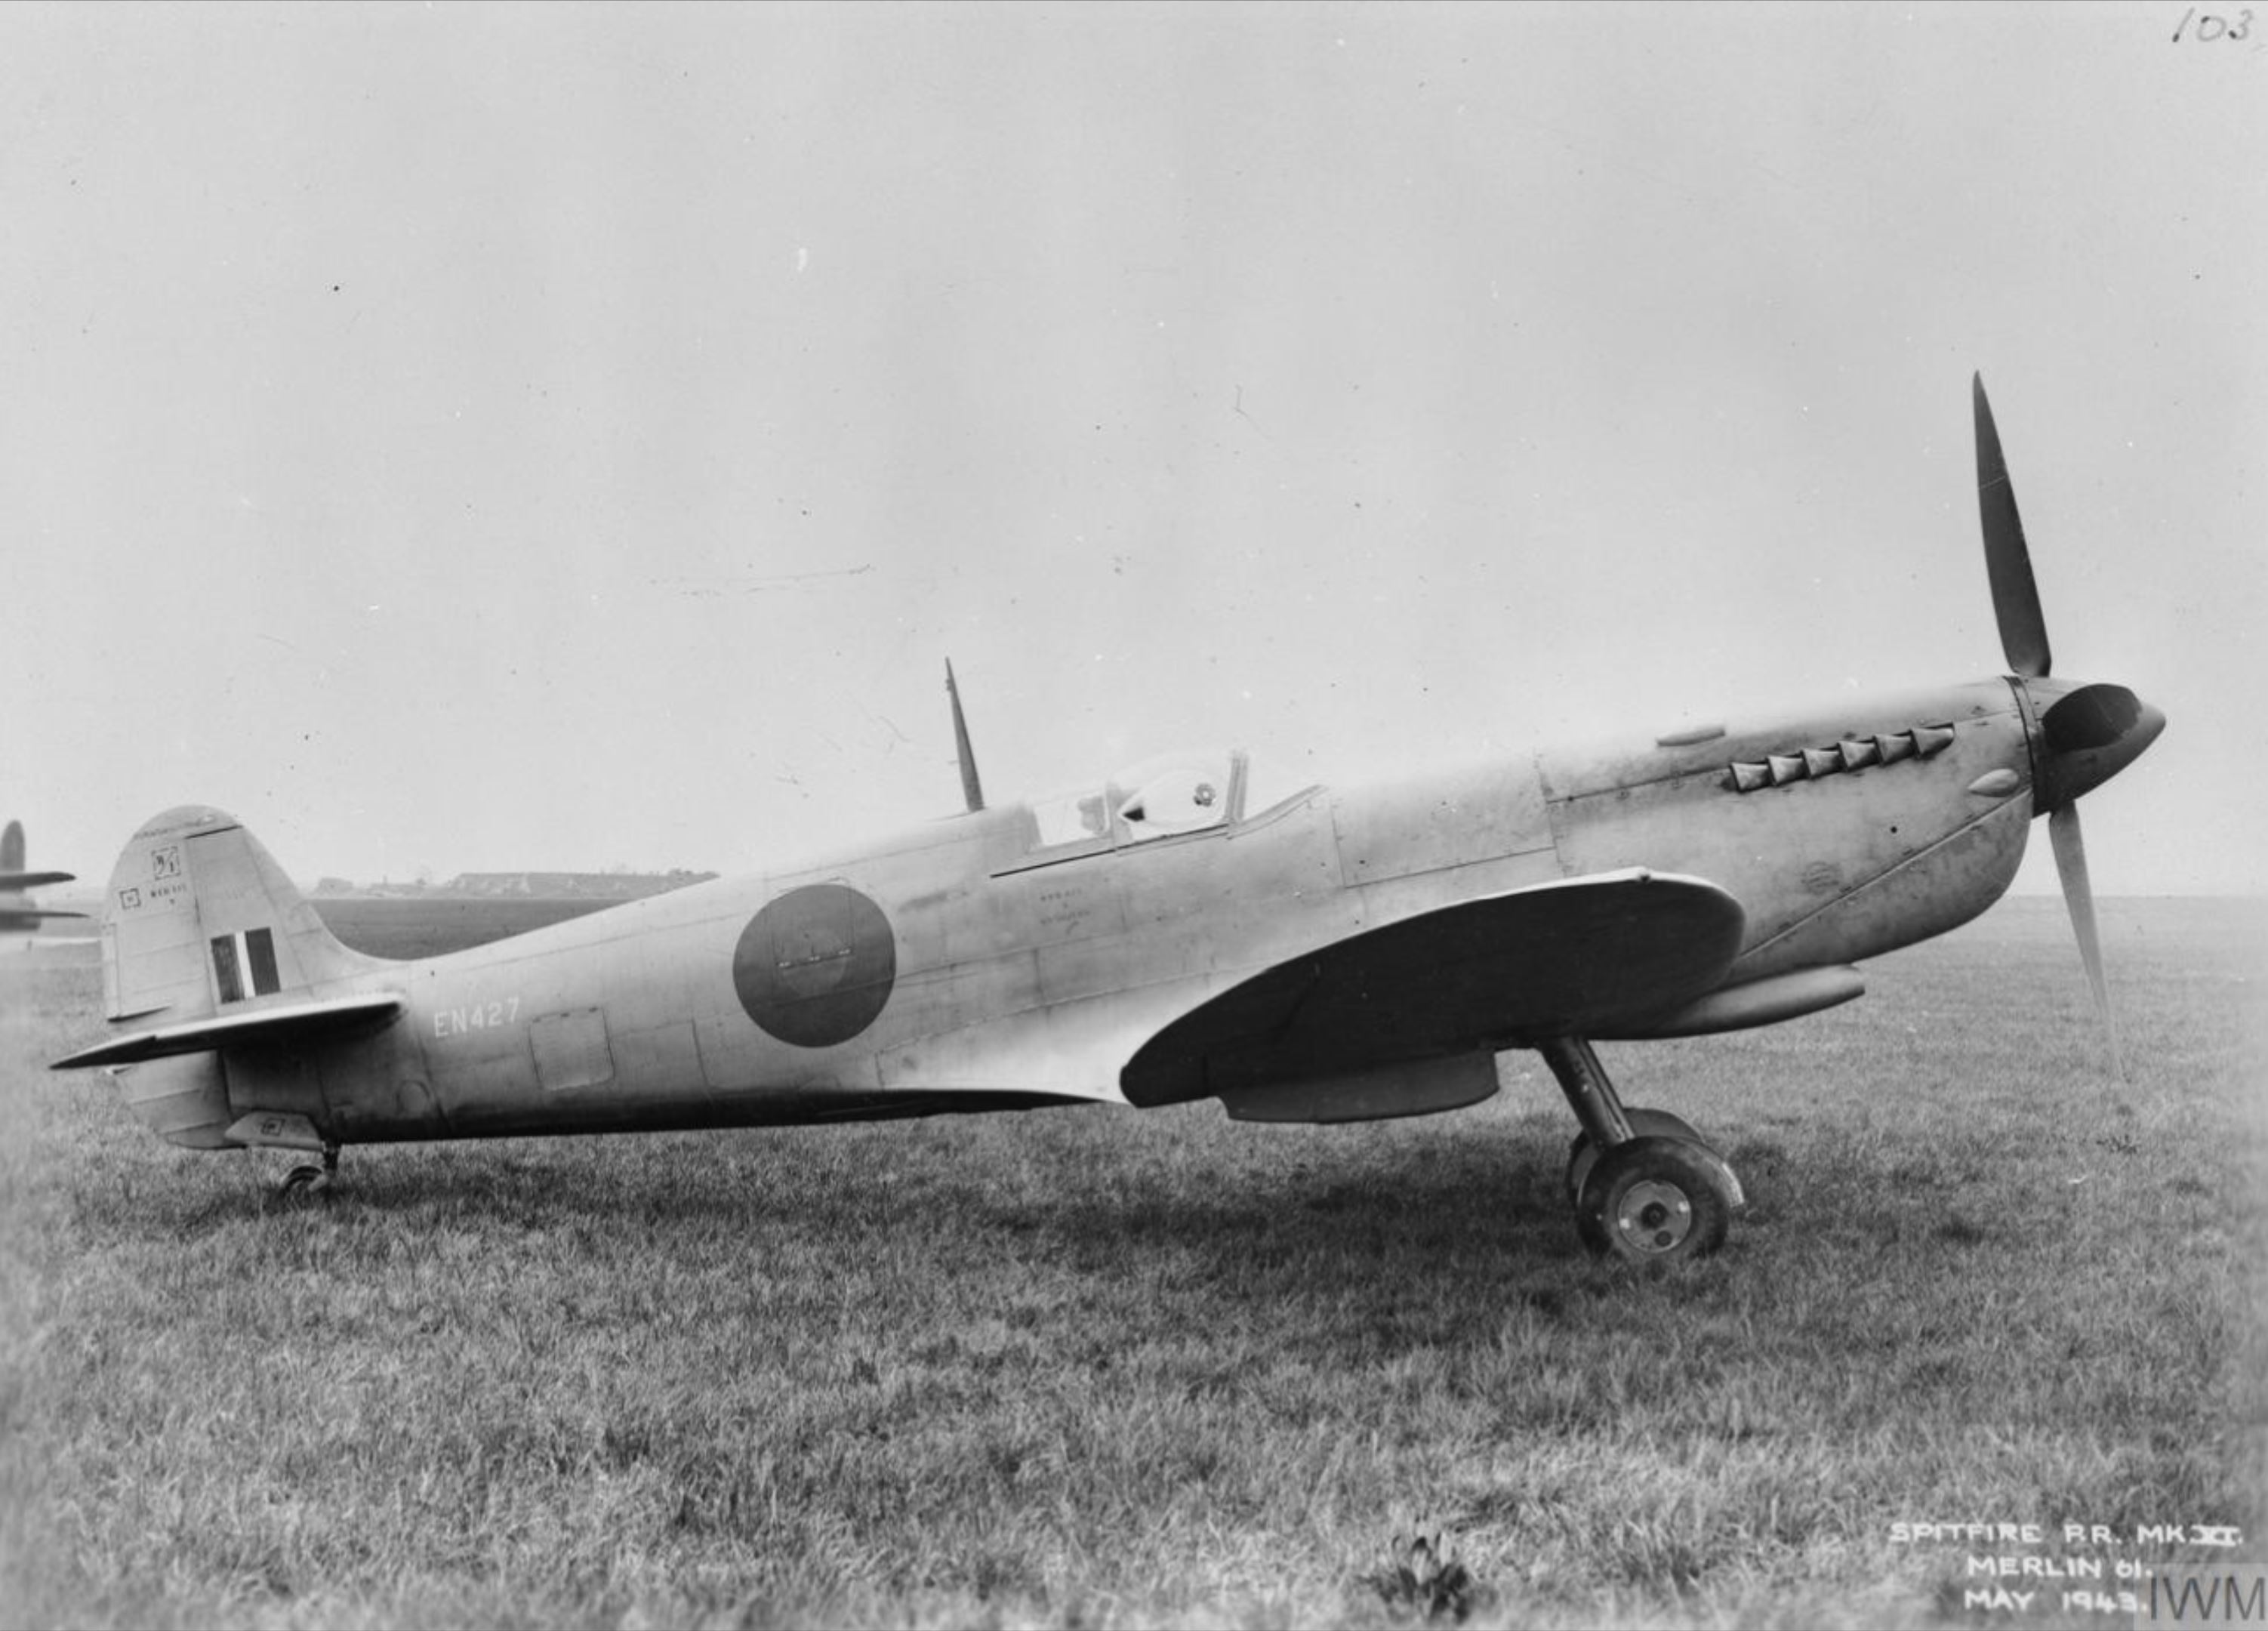 Spitfire 11 Prototype EN427 side profile view England May 1943 IWM MH5111